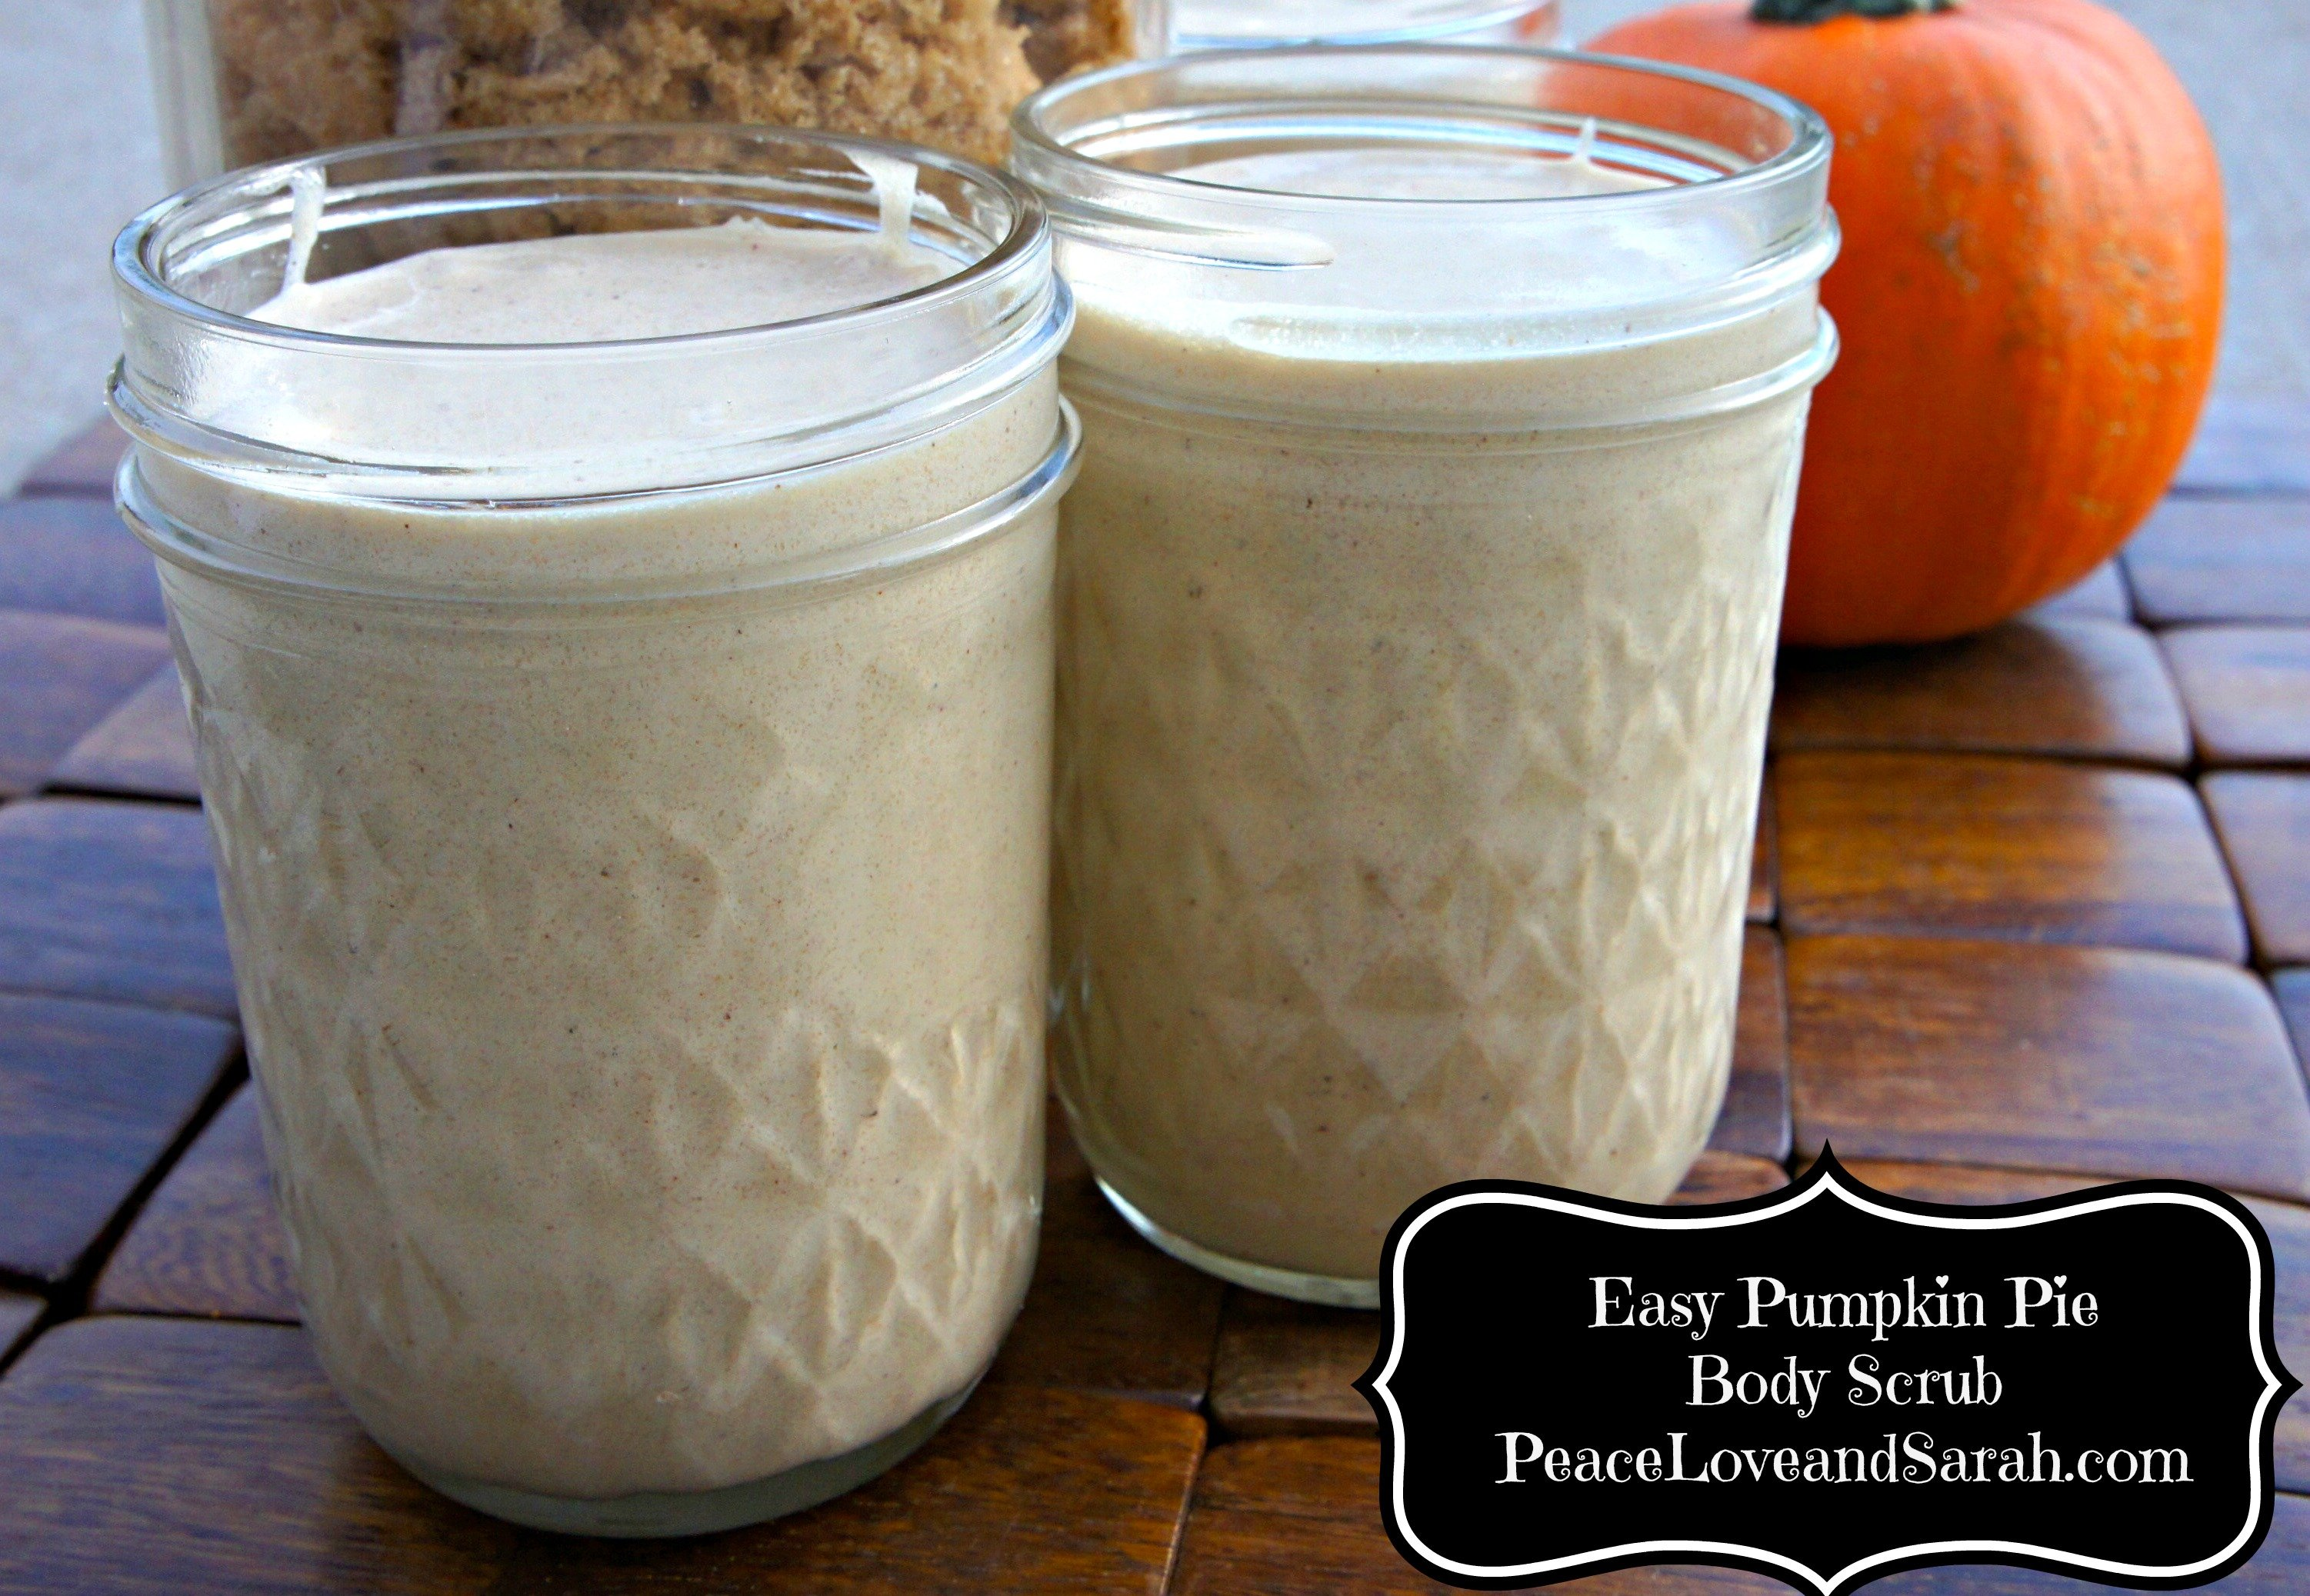 Pumpkin Pie Body Scrub from PeaceLoveandSarah.com #DIY